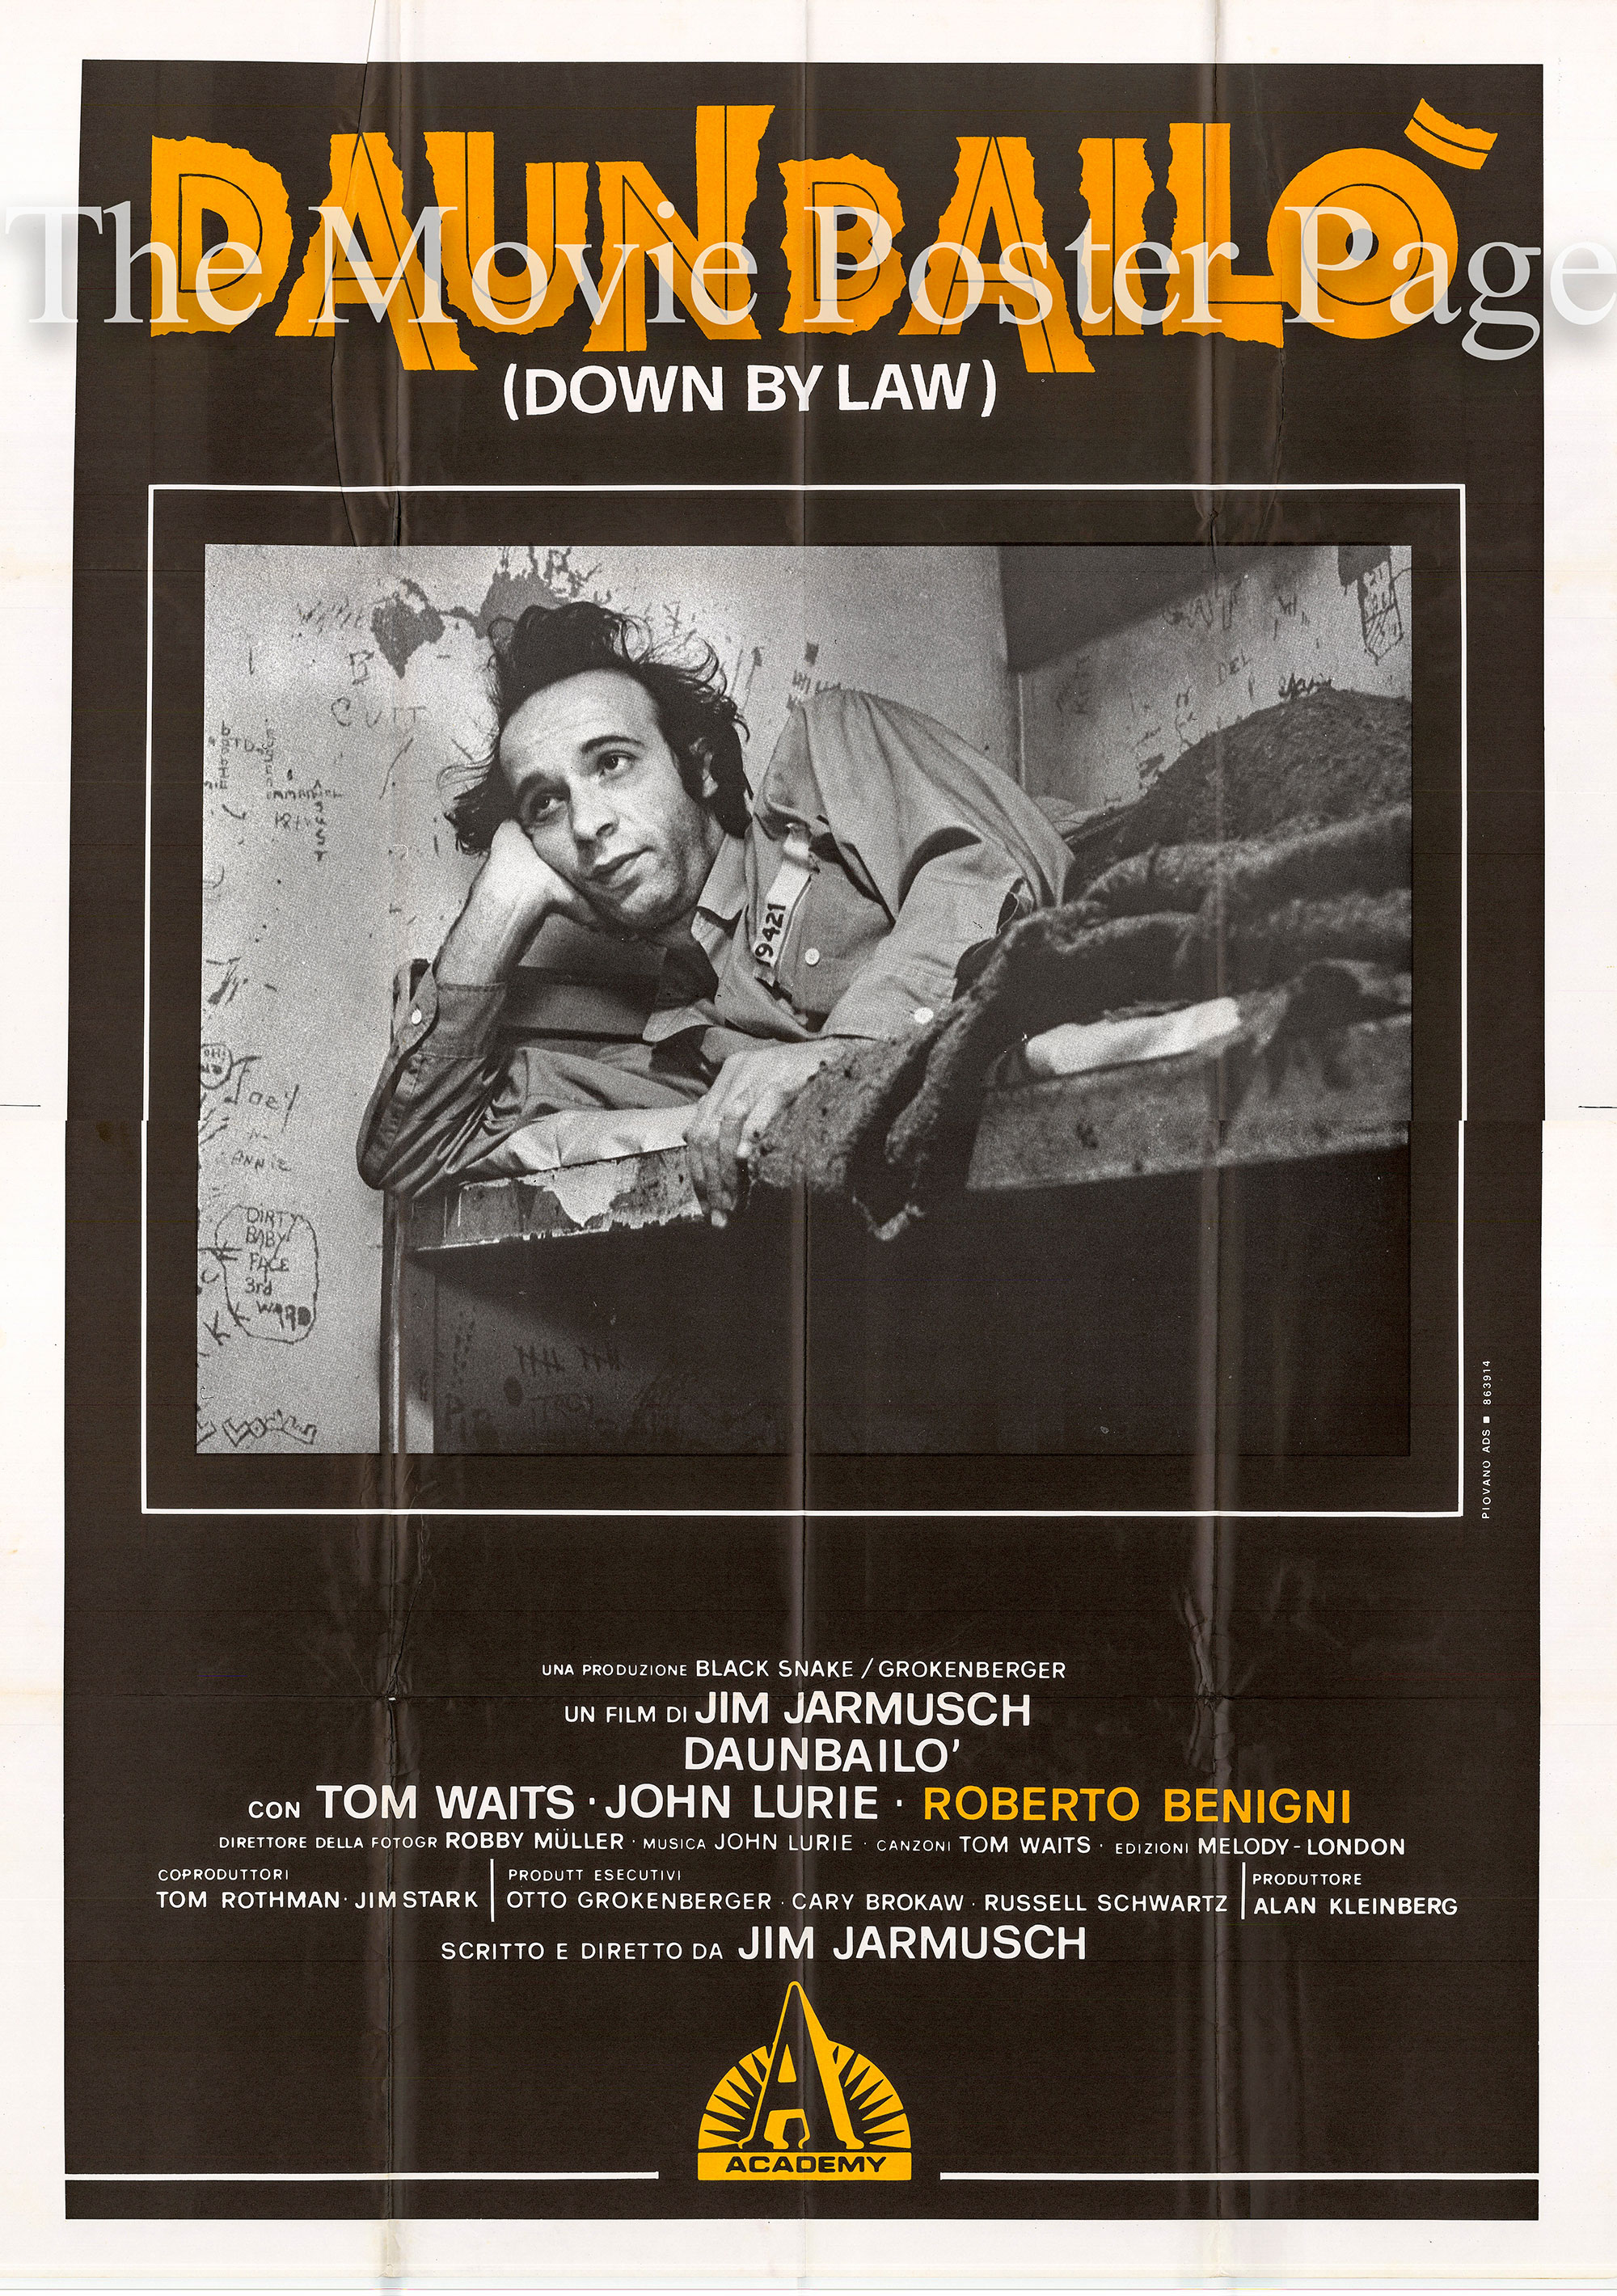 Pictured is an Italian four-sheet promotional poster for the 1986 Jim Jarmusch film Down by Law starring Tom Waits.